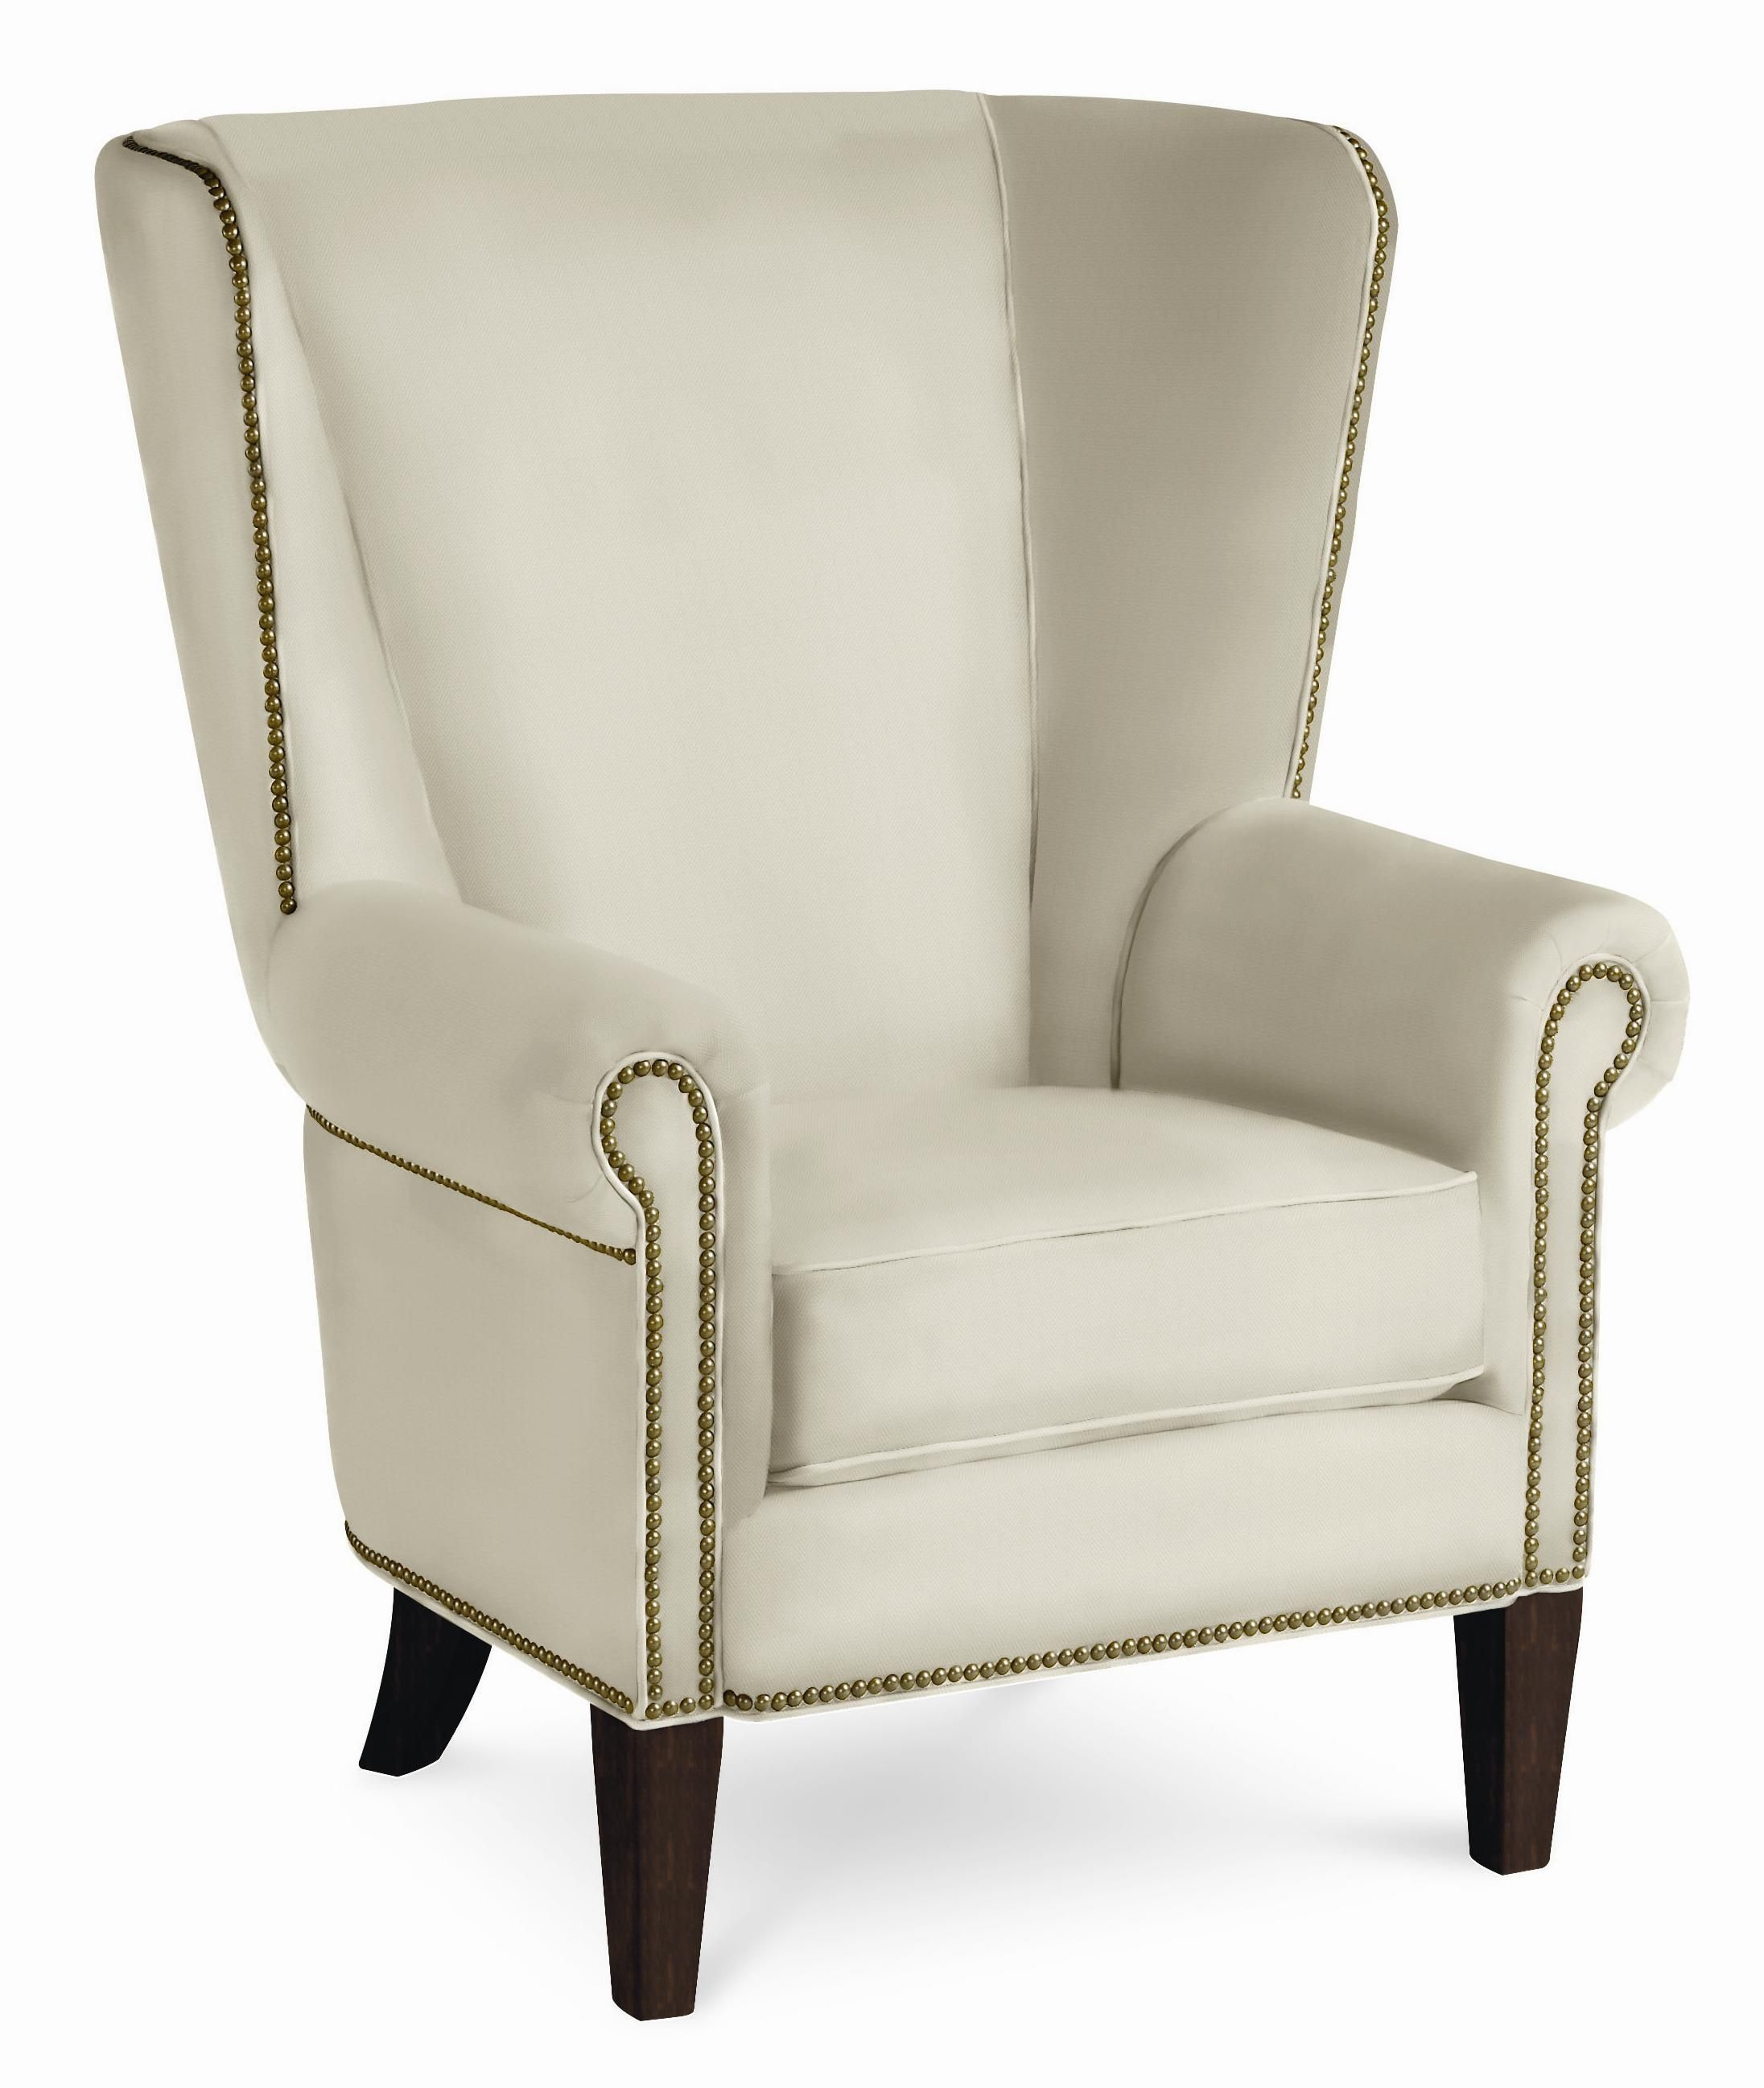 Contemporary high back living room chairs